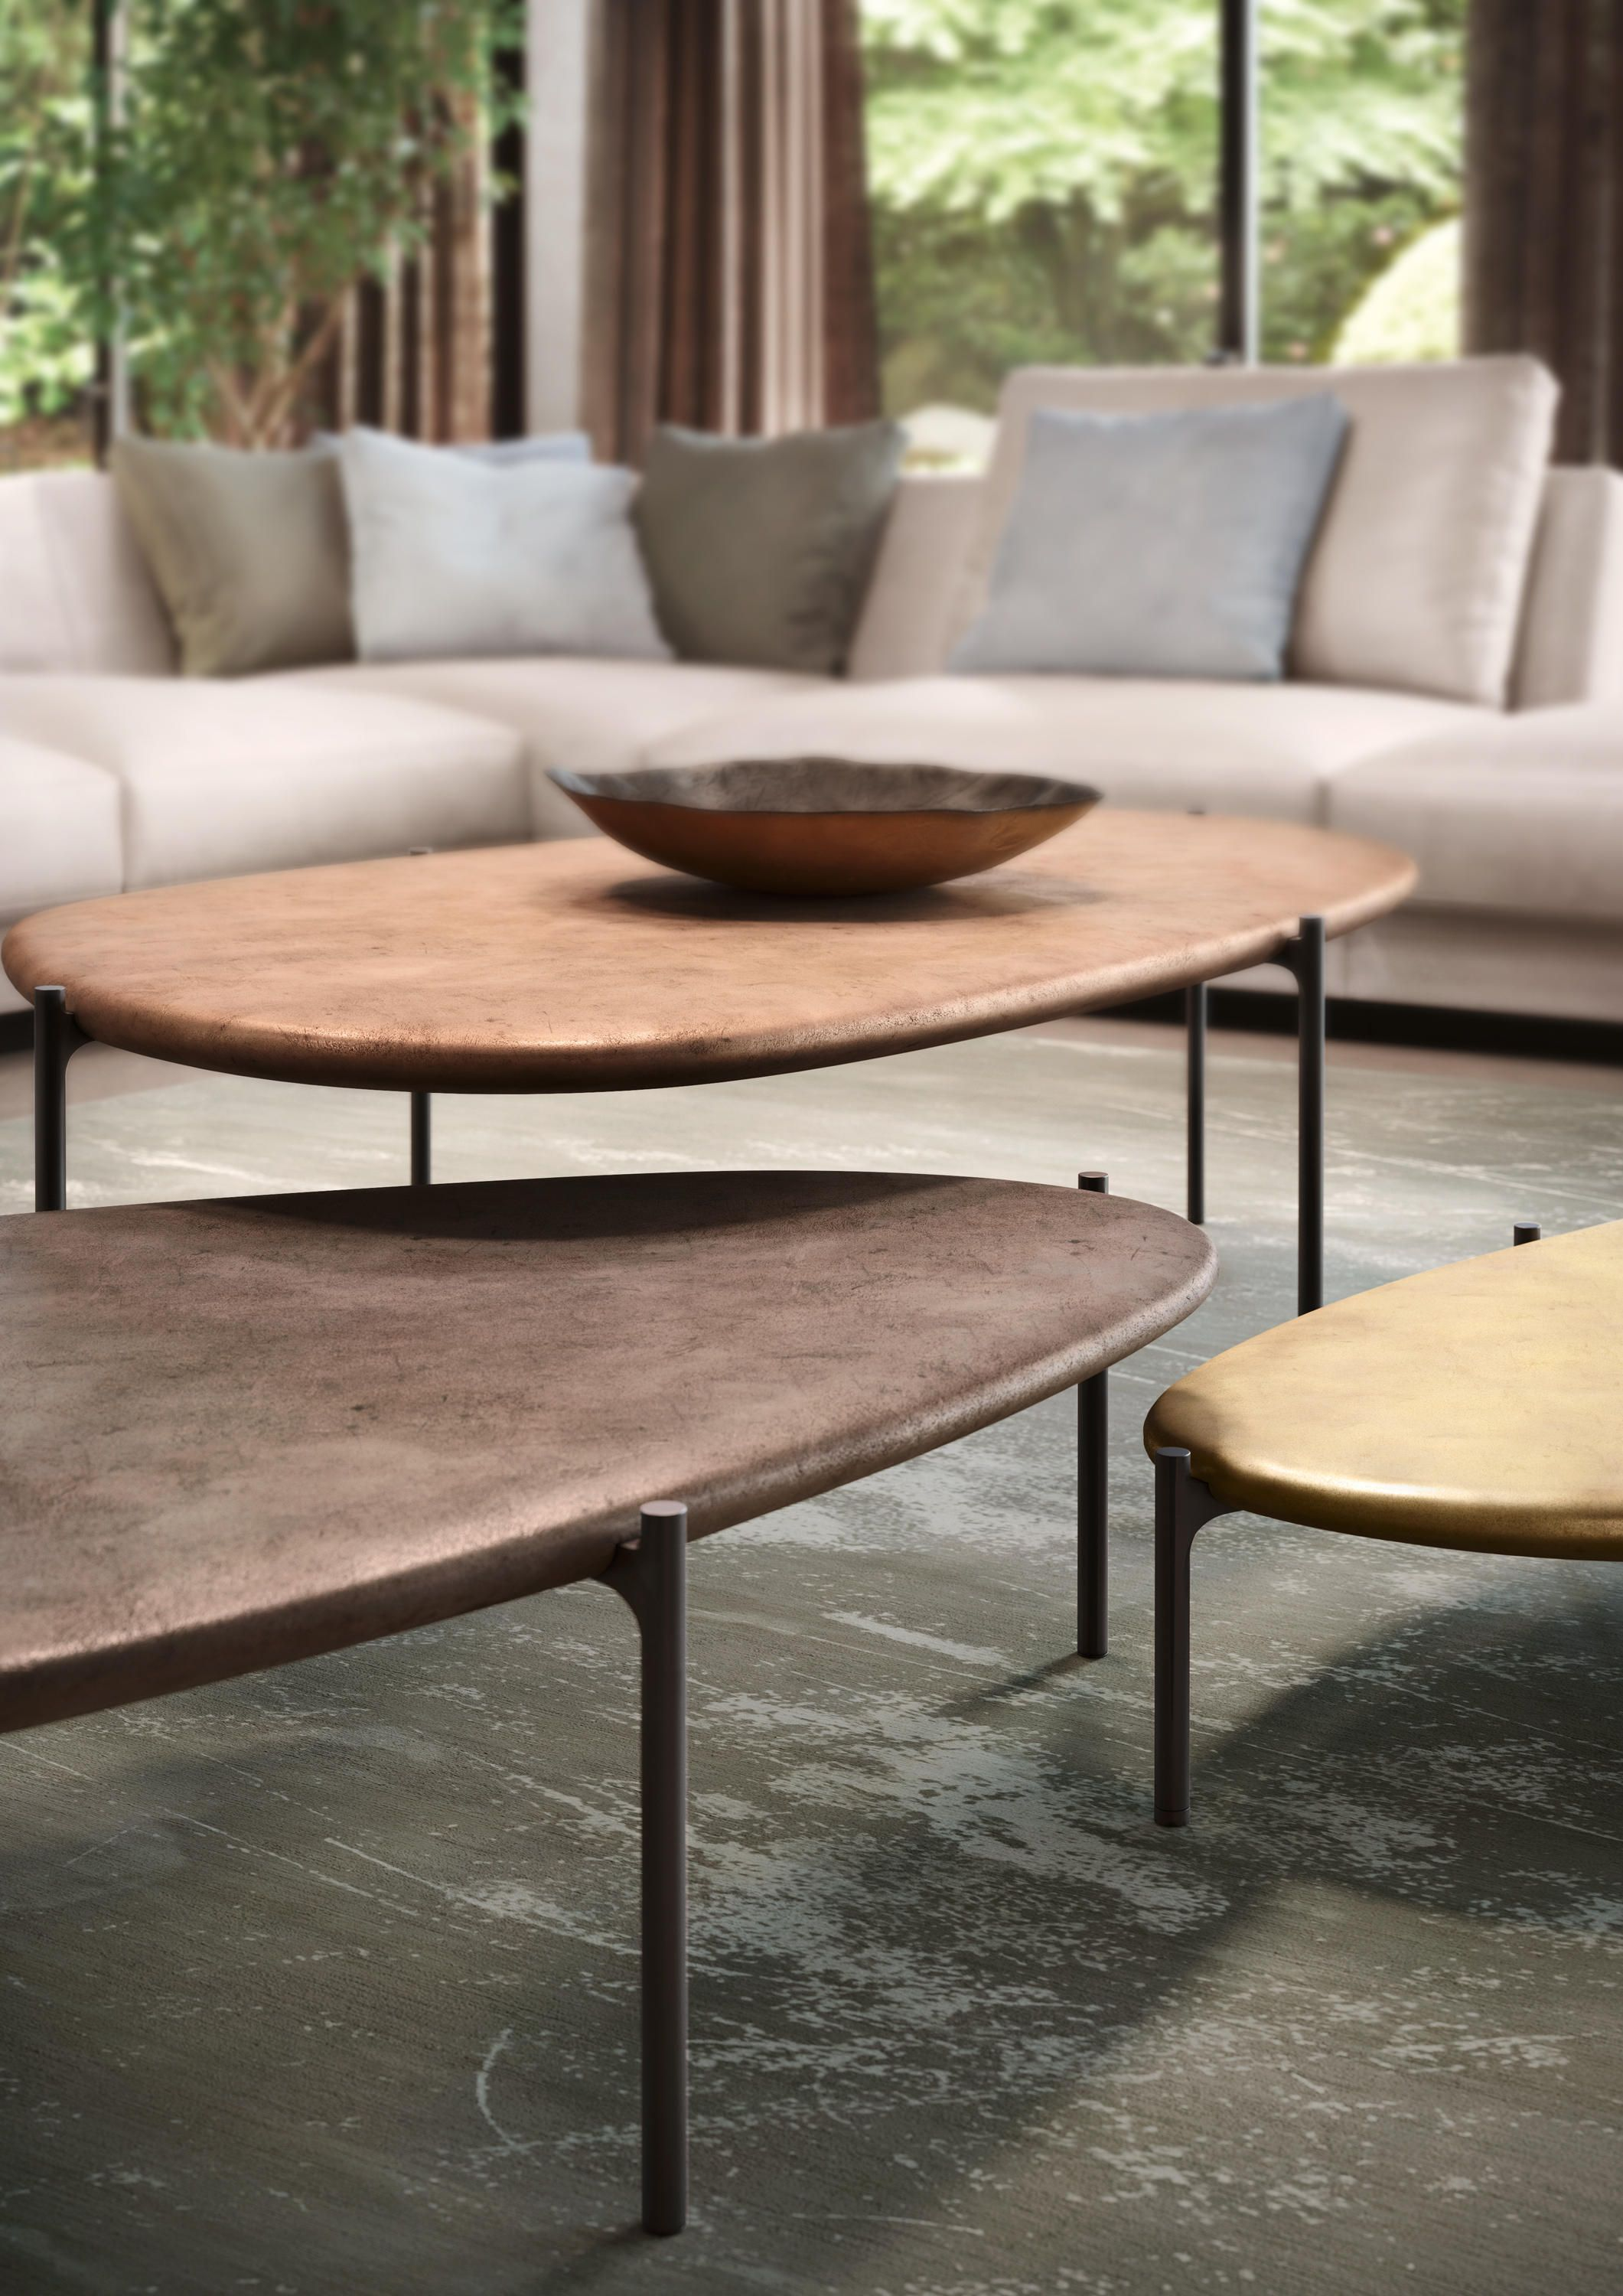 Ishino Table Coffee Tables From Walter Knoll Architonic In 2020 Knoll Coffee Table Coffee Table Table Top Design